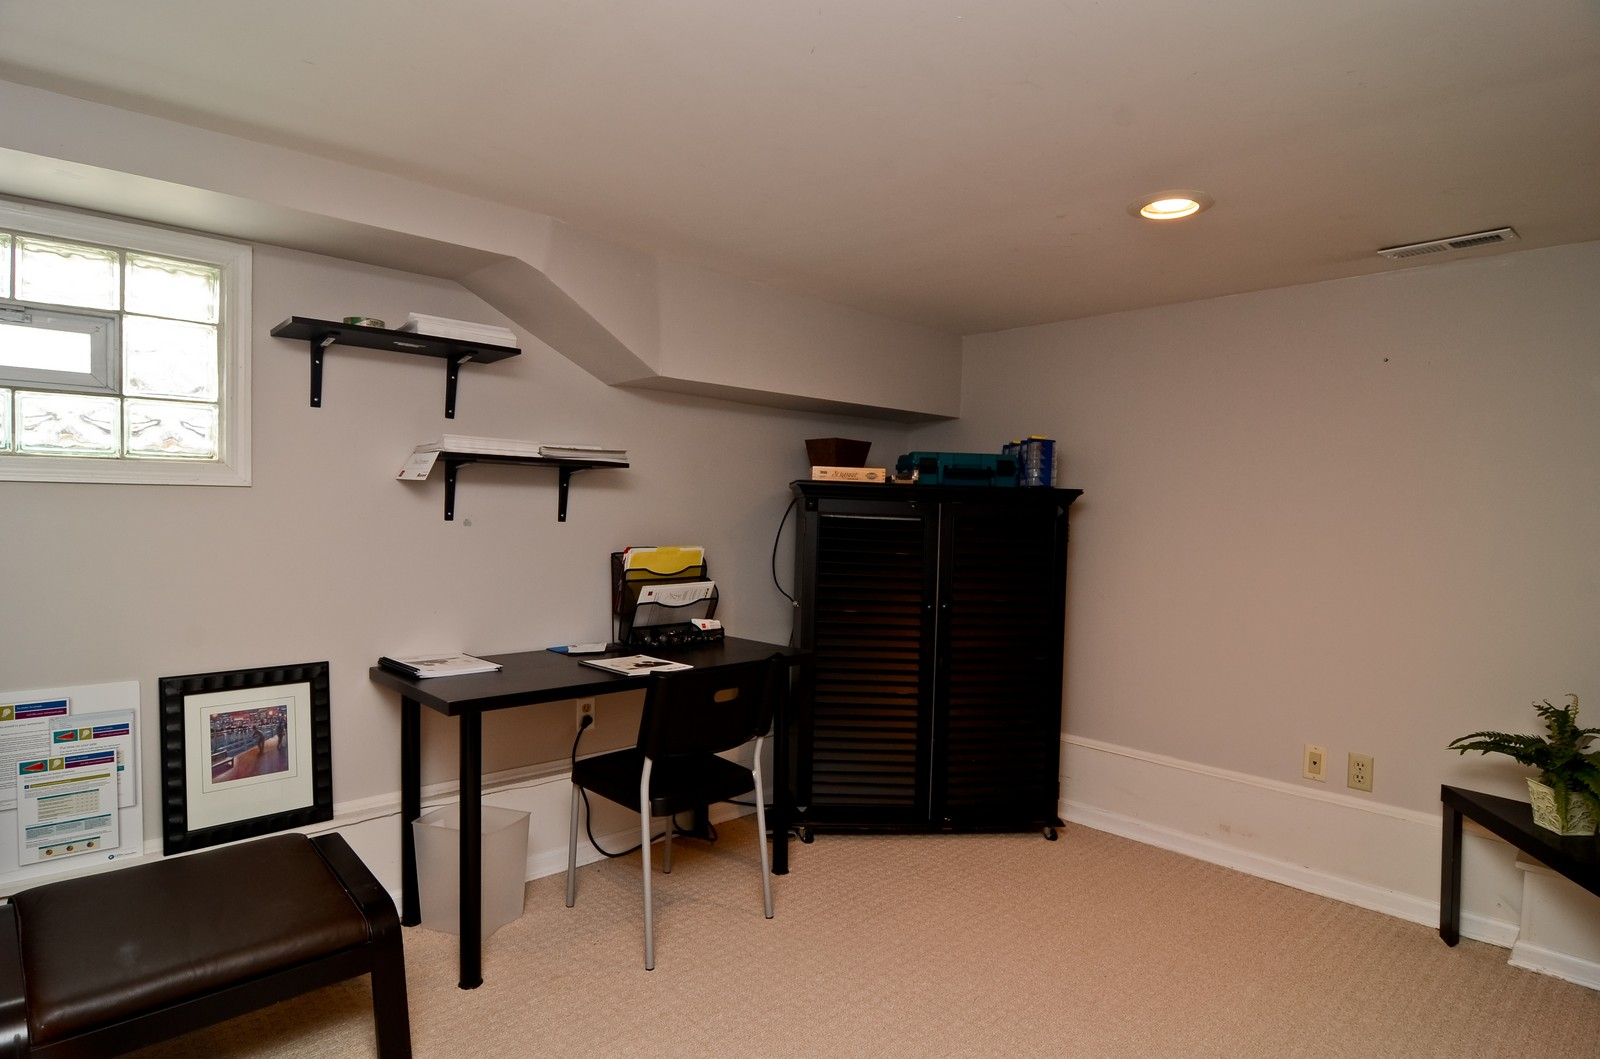 Real Estate Photography - 3525 W Wollfram, Chicago, IL, 60618 - Location 2